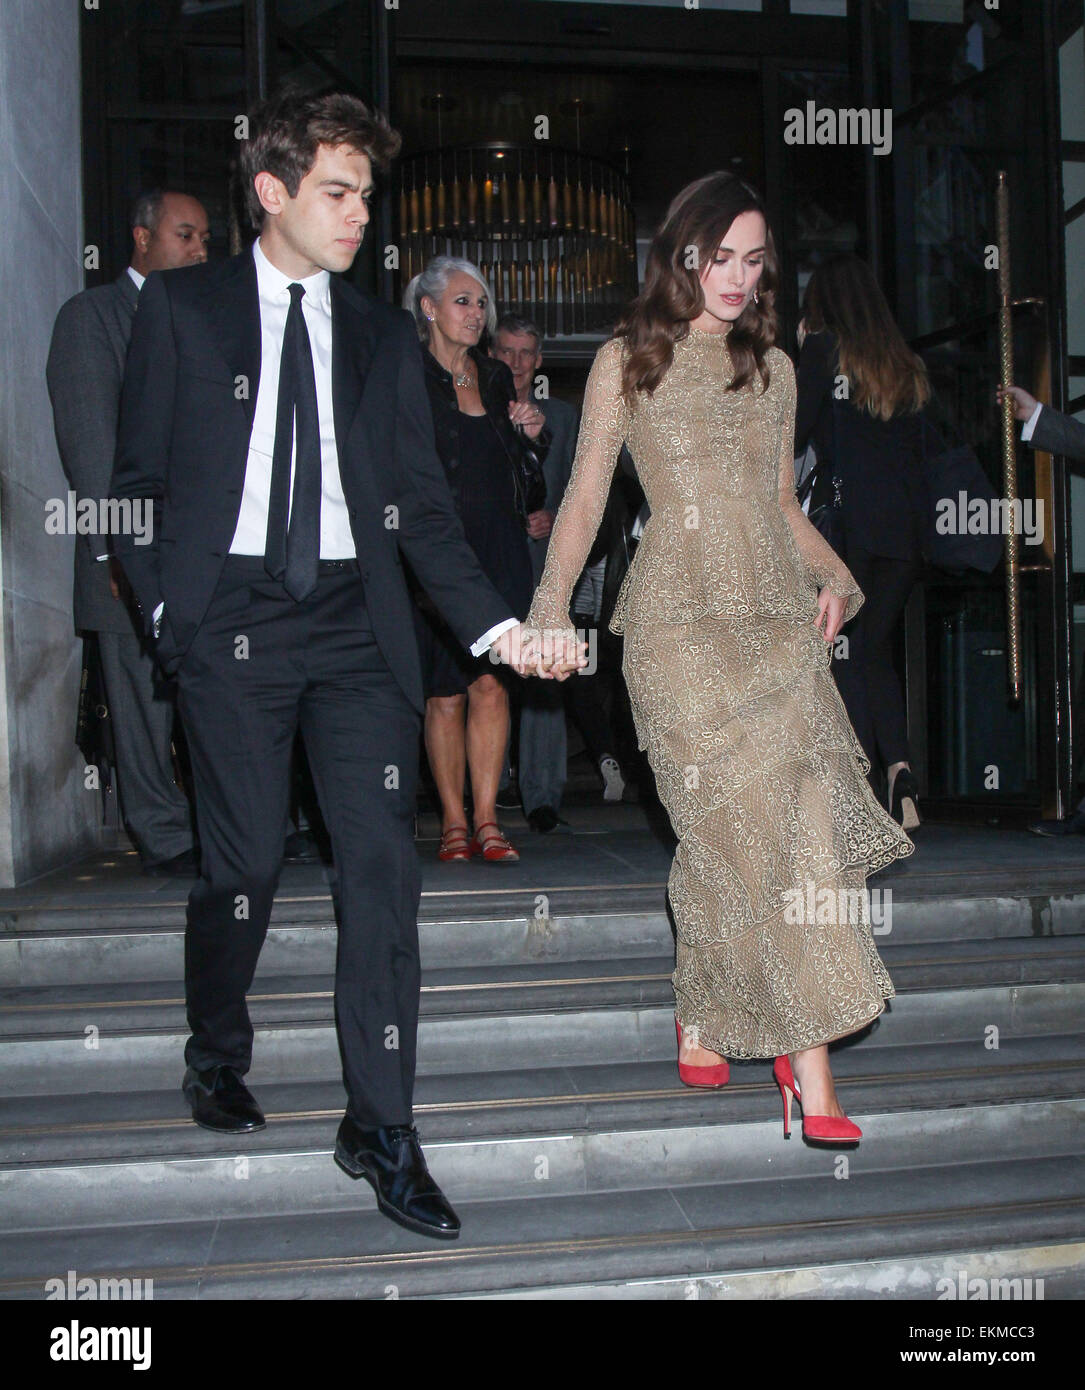 Keira Knightley and husband James Righton leave their hotel